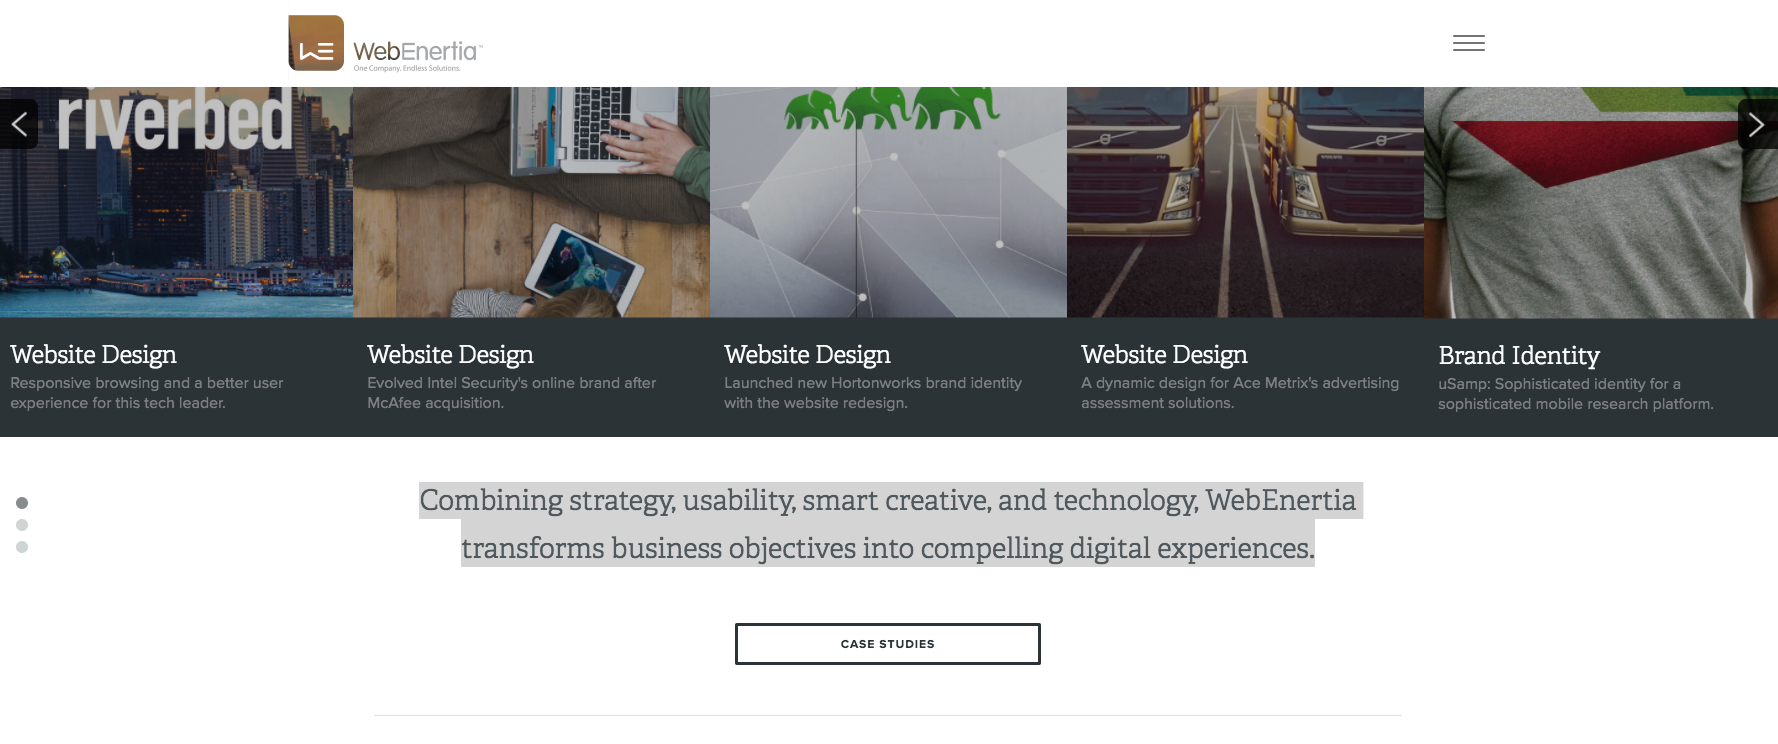 WebEnertia, Inc. - California - Agency - Digital